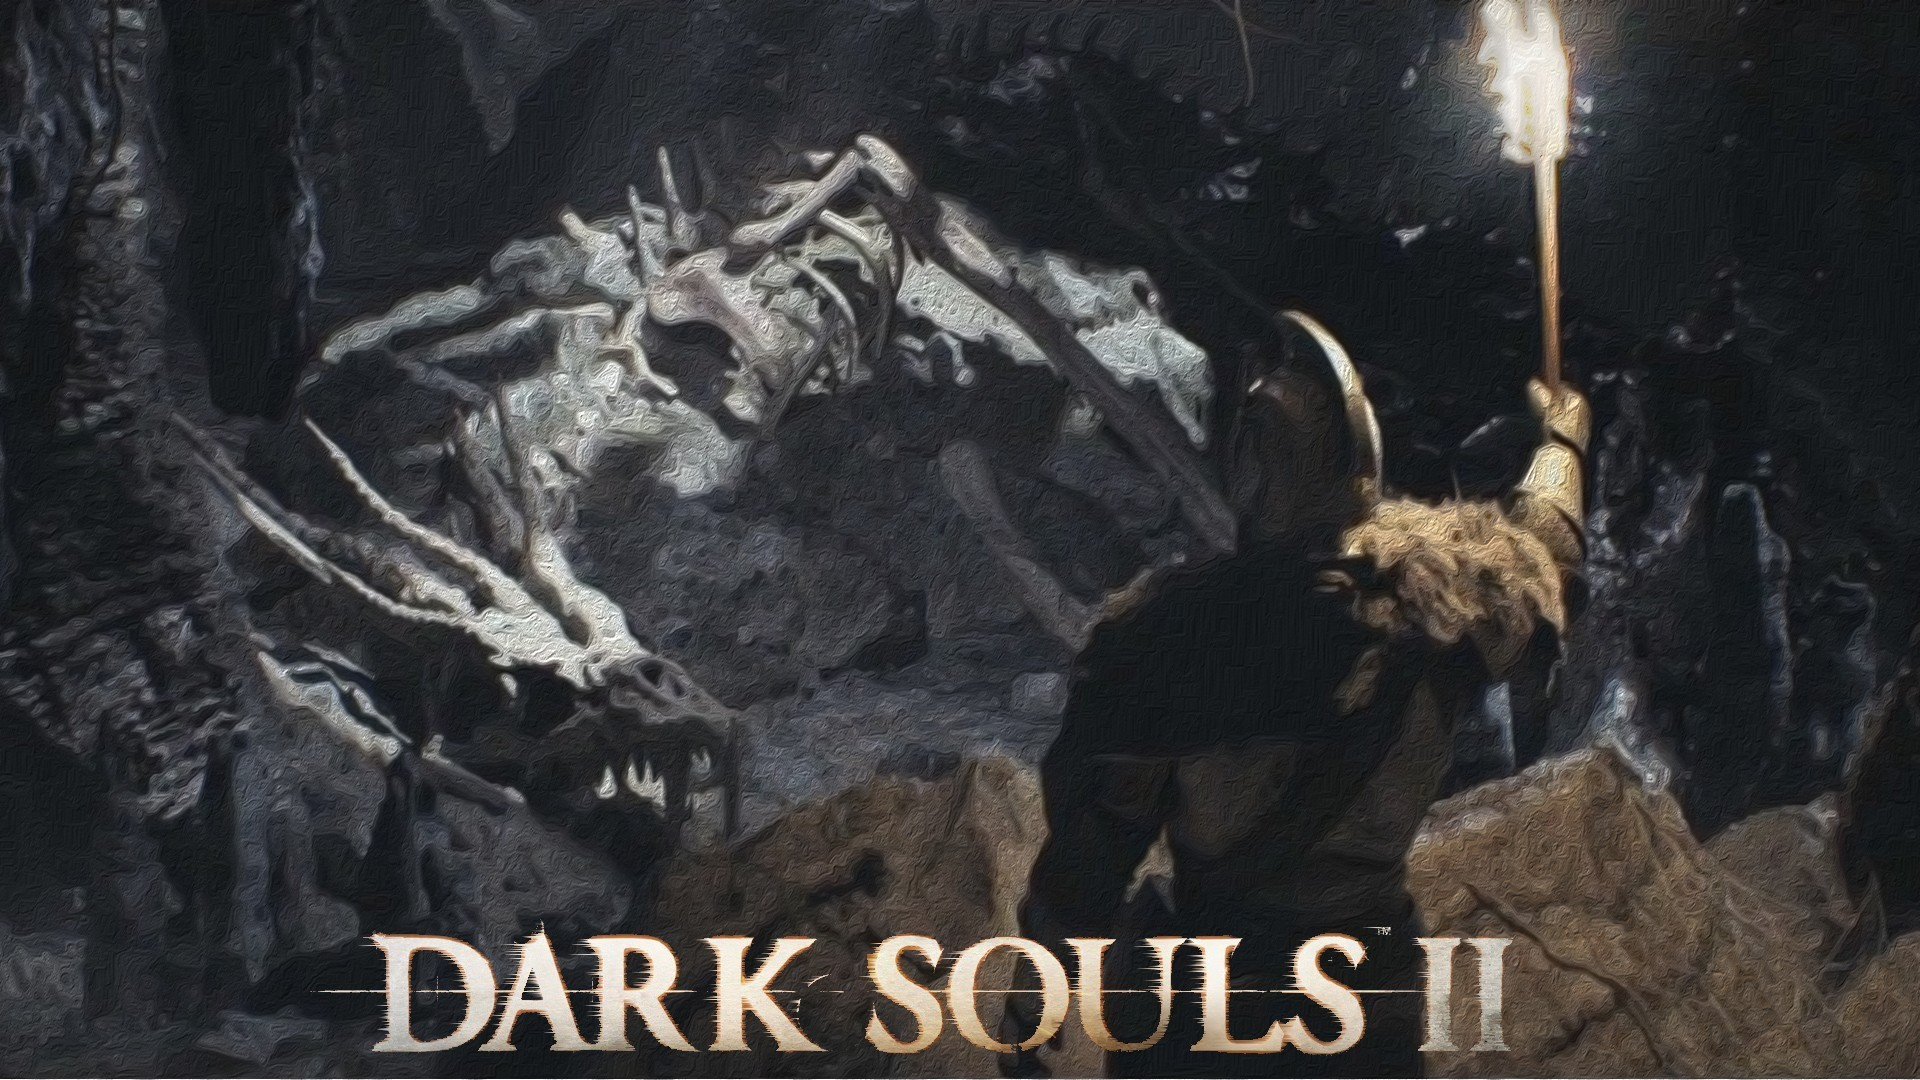 Dark Souls 2 Wallpaper HD | PixelsTalk.Net